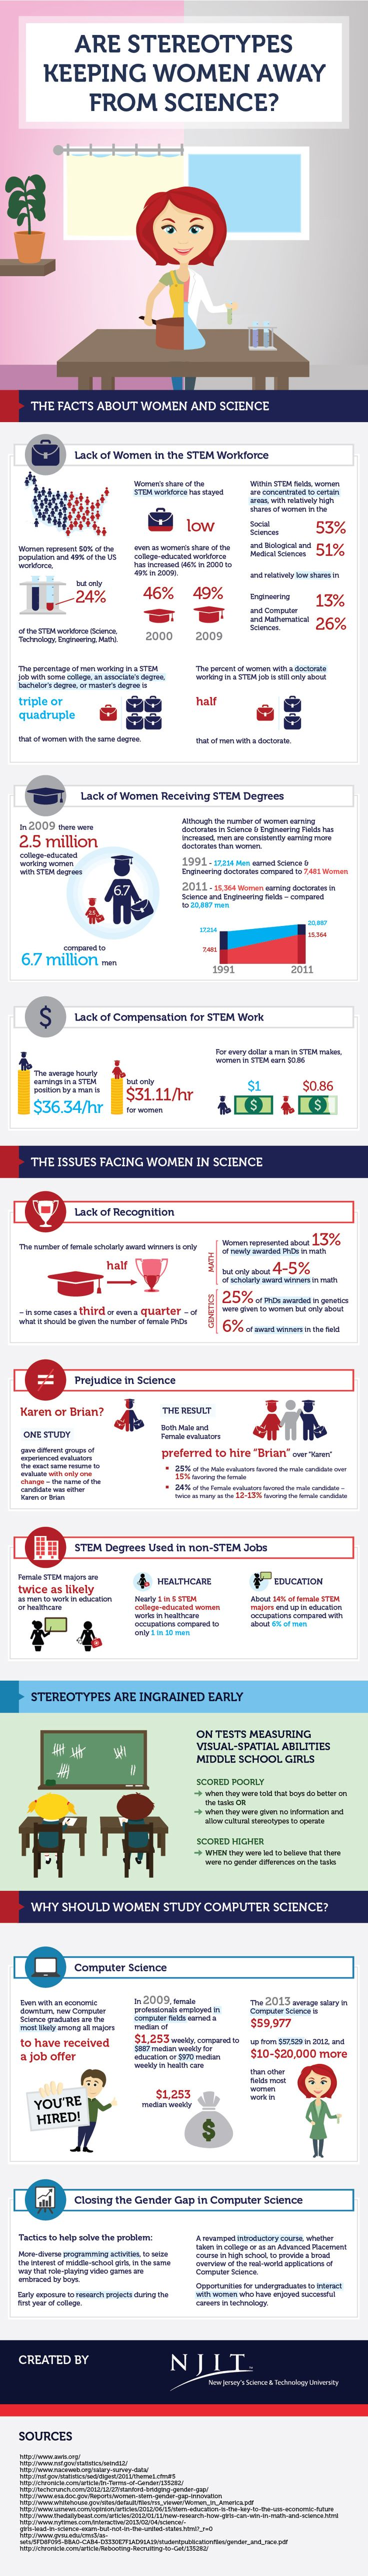 Are Stereotypes Keeping Women Away From Science? From Innovation Excellence